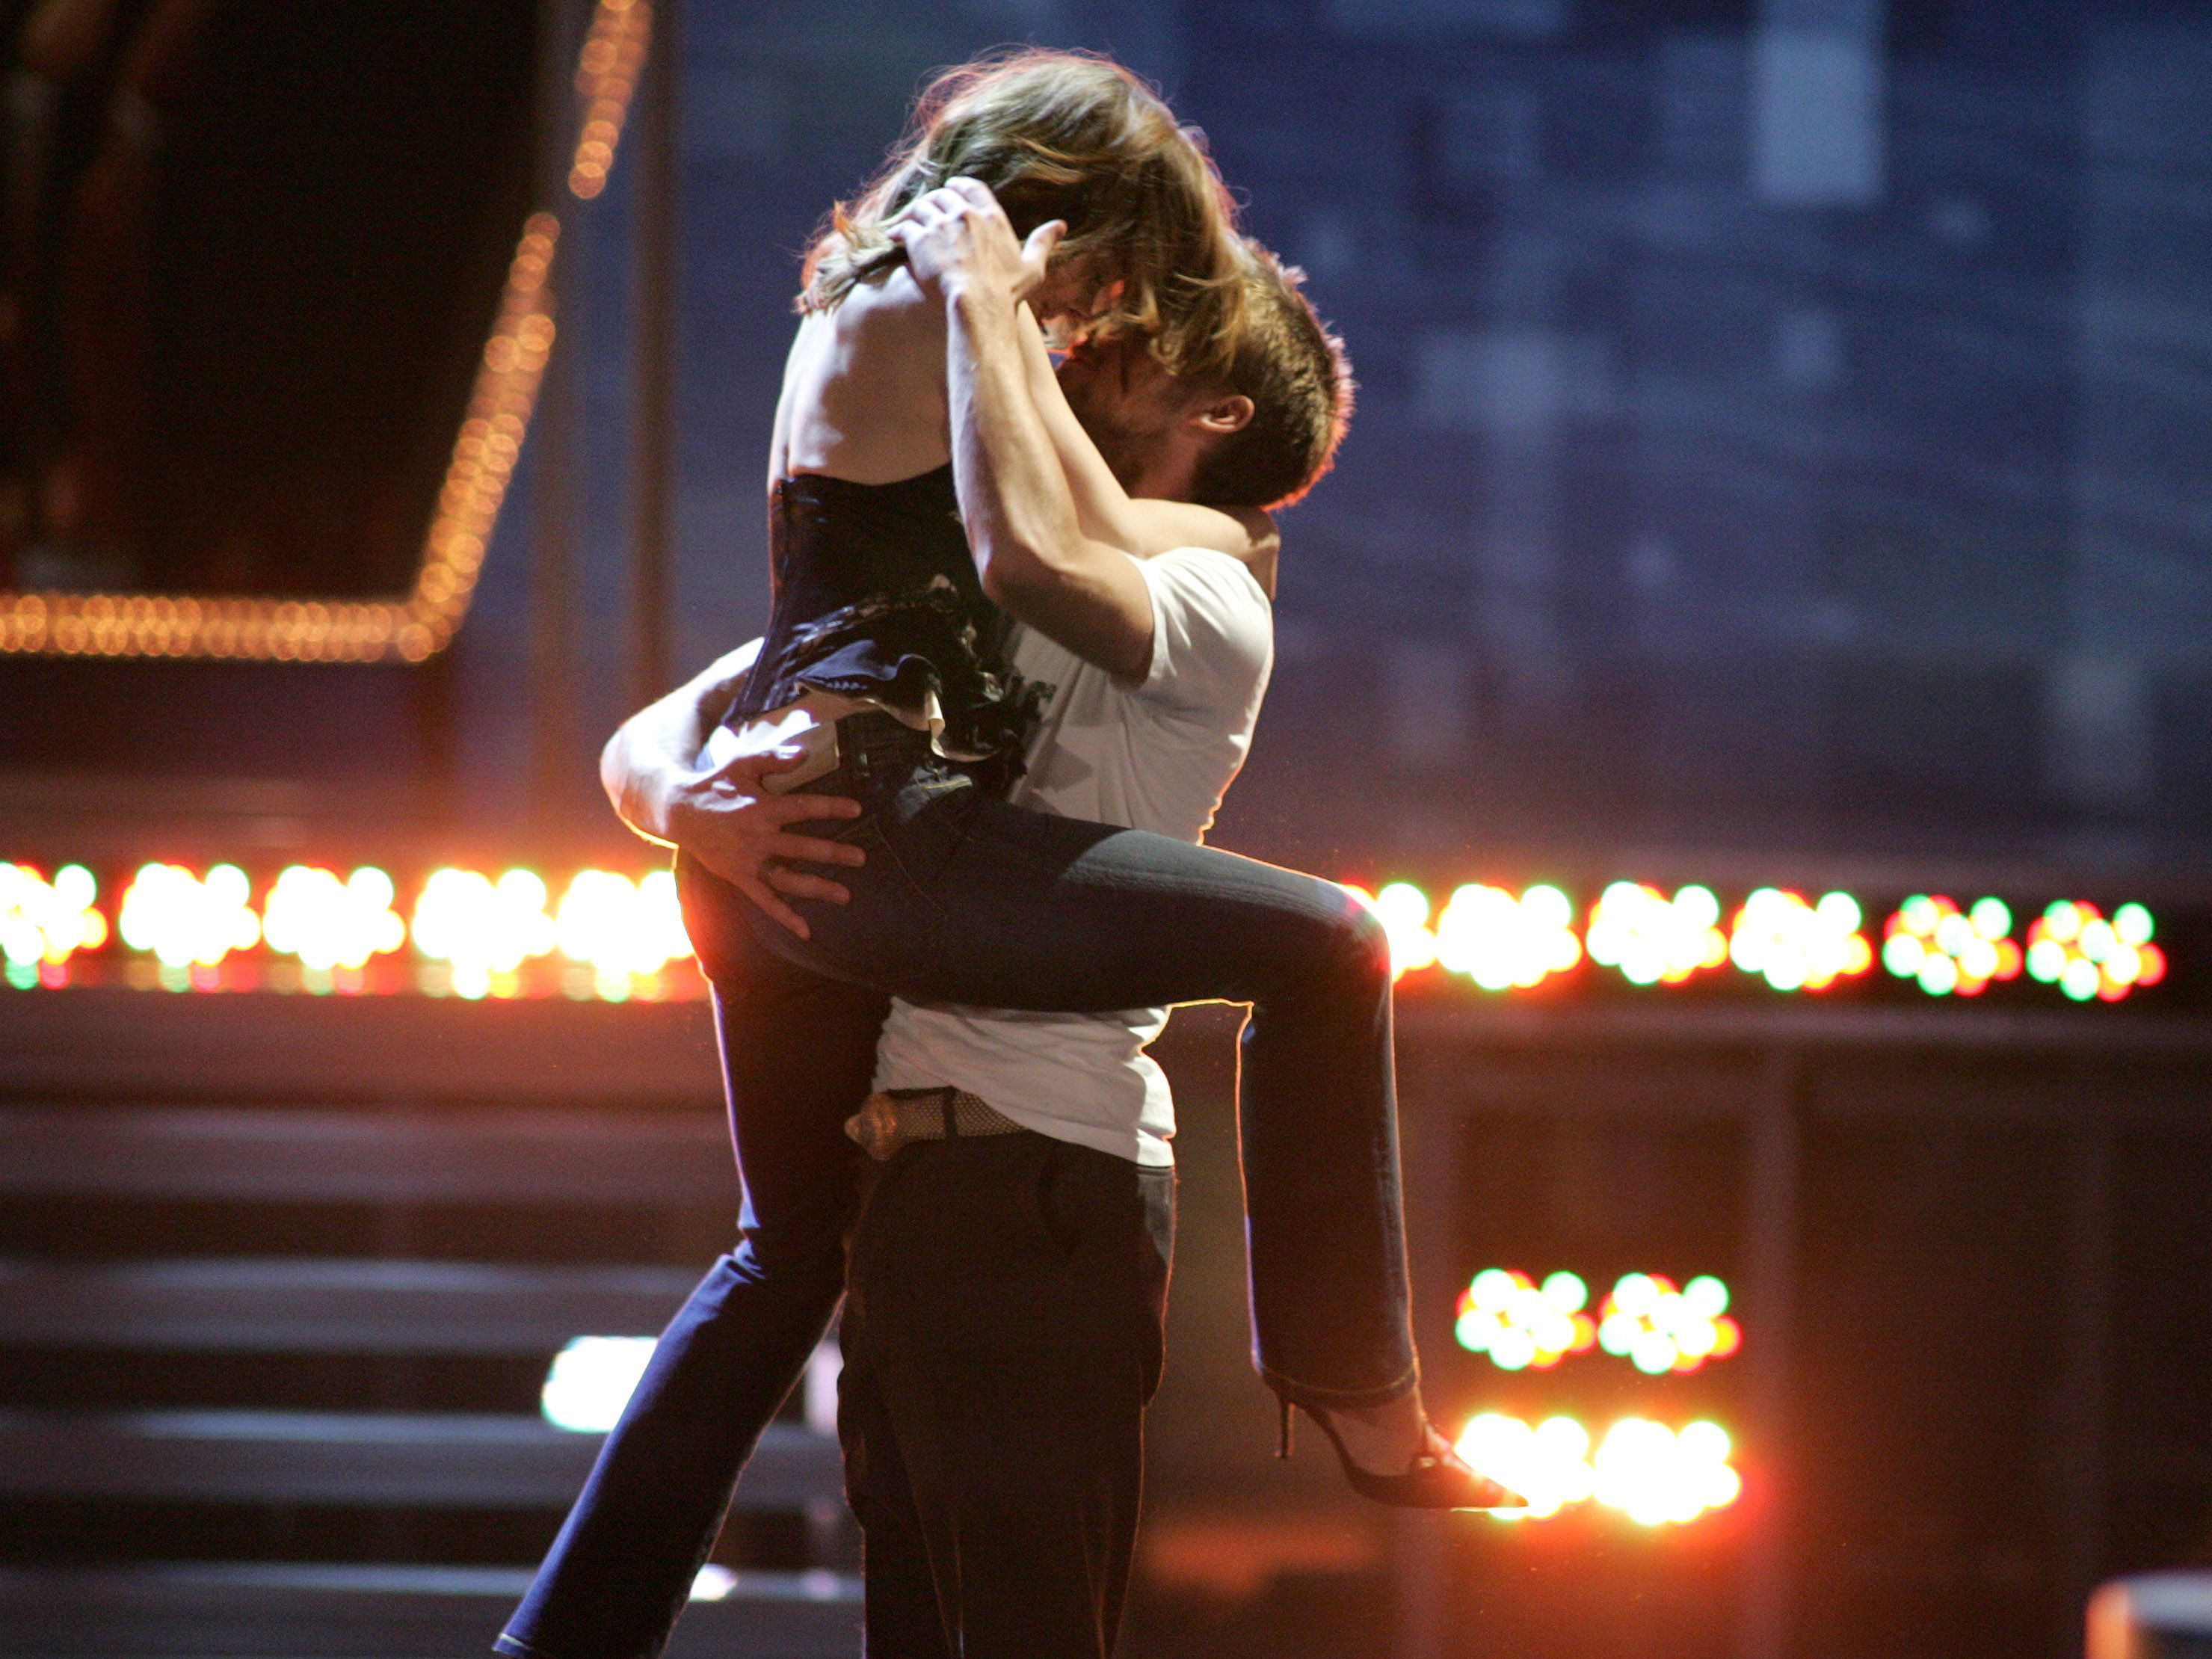 Remember When Ryan Gosling And Rachel McAdams Recreated Their Iconic Notebook  Kiss At The Movie Awards? - MTV